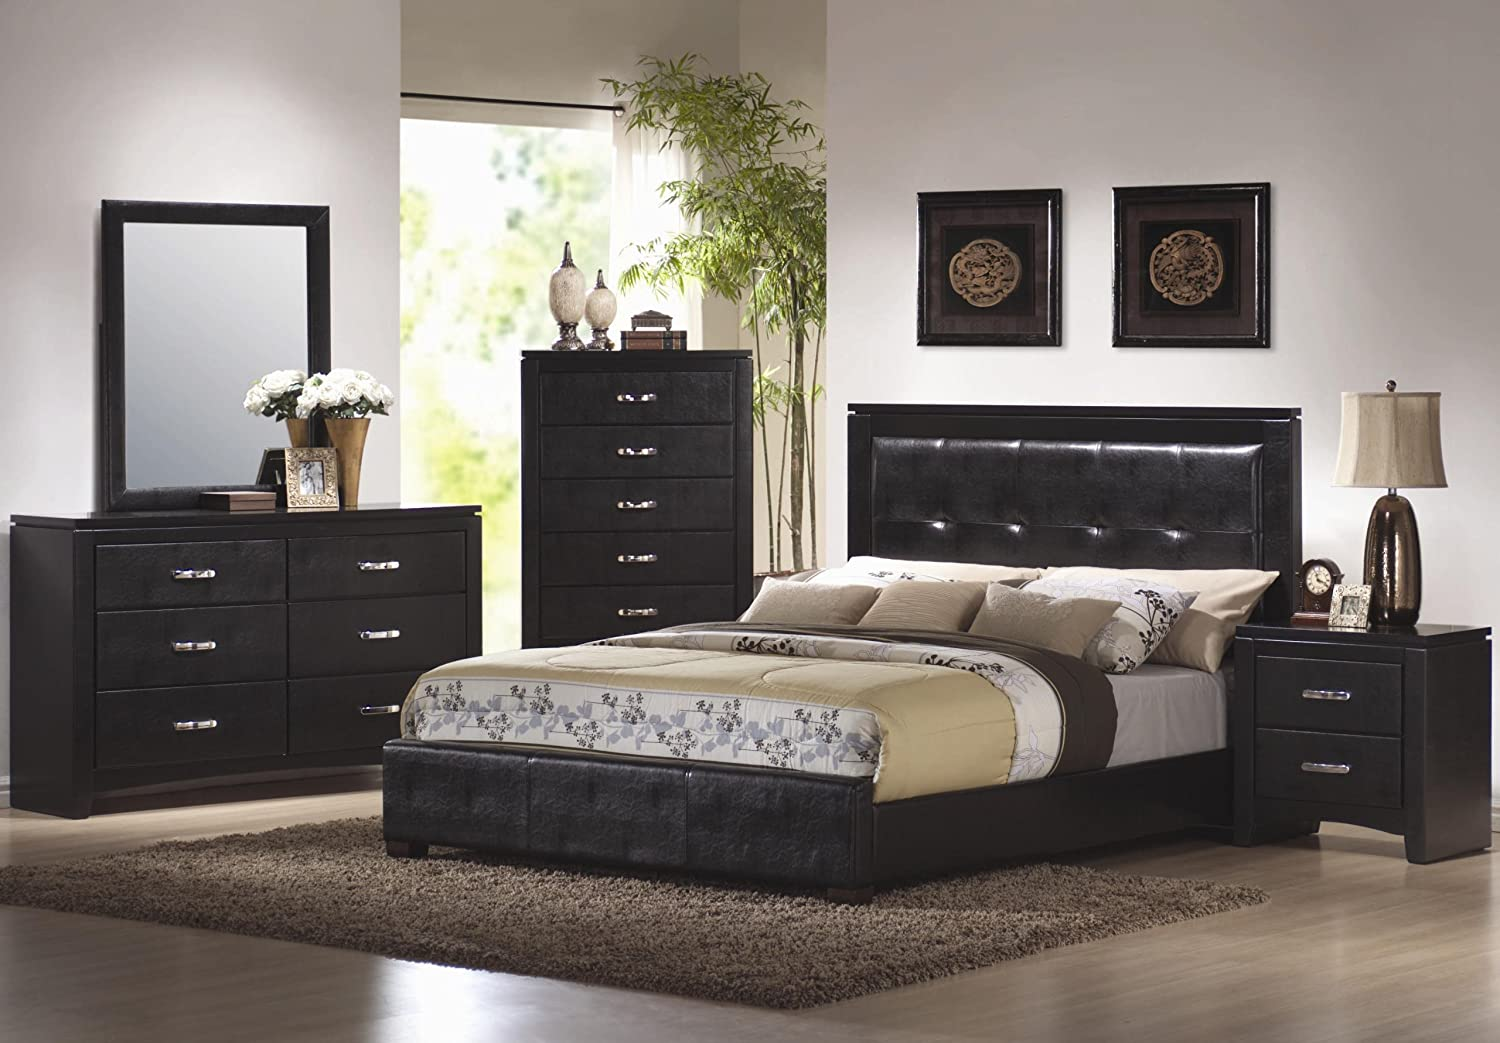 Amazon.com: 4pc California King Size Bedroom Set in Black Finish ...